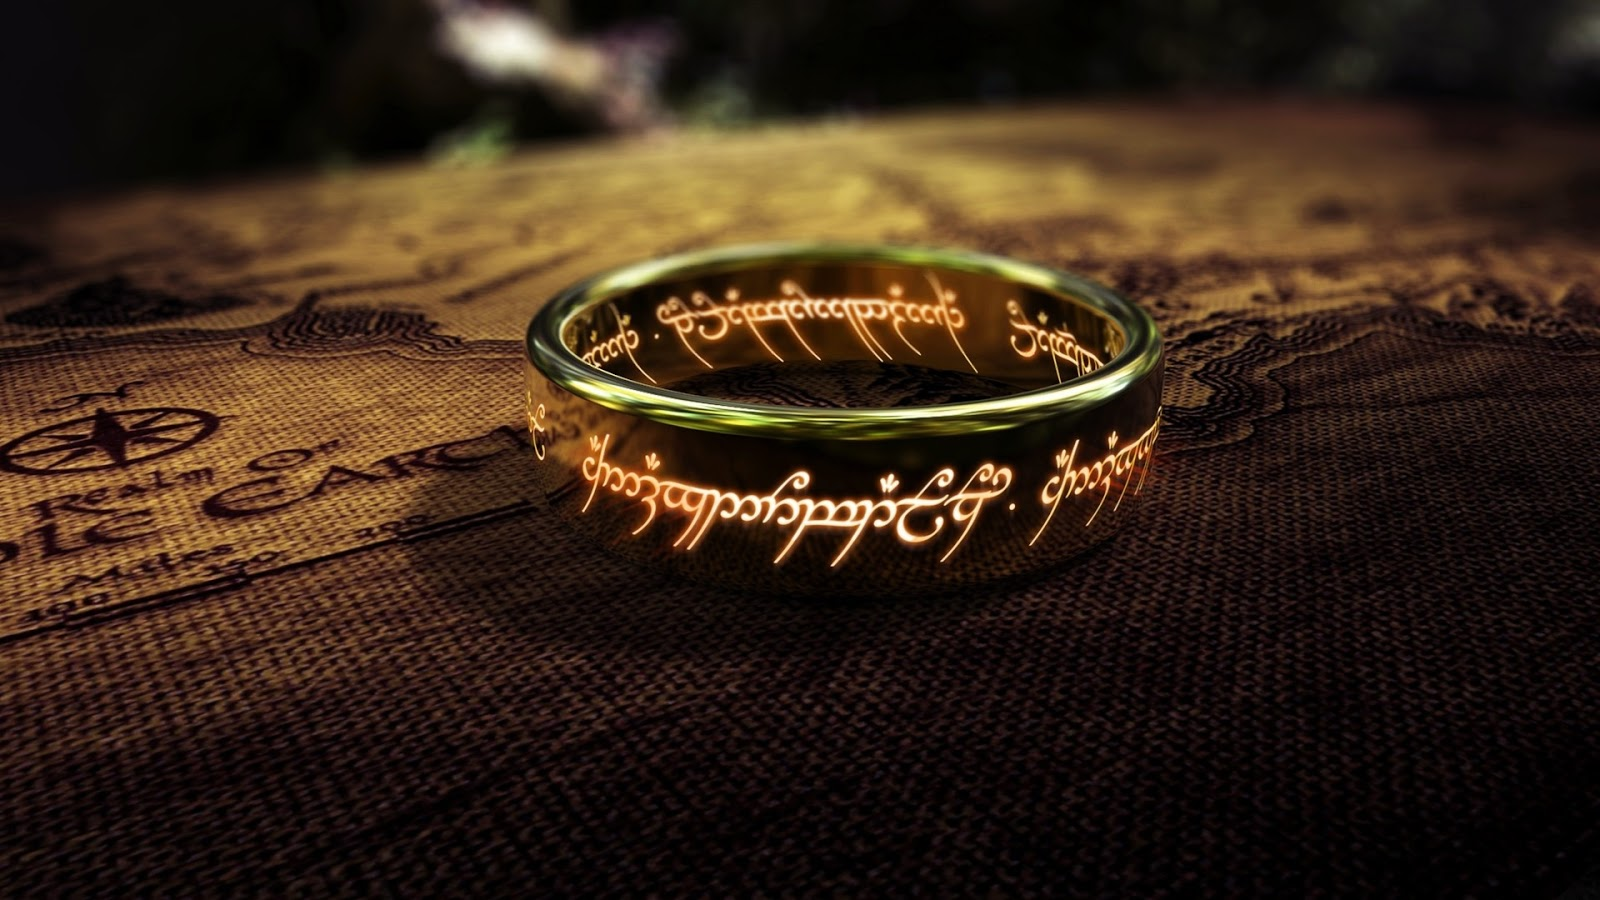 Download The Lord Of The Rings Wallpaper For Desktop and Mac 1600x900